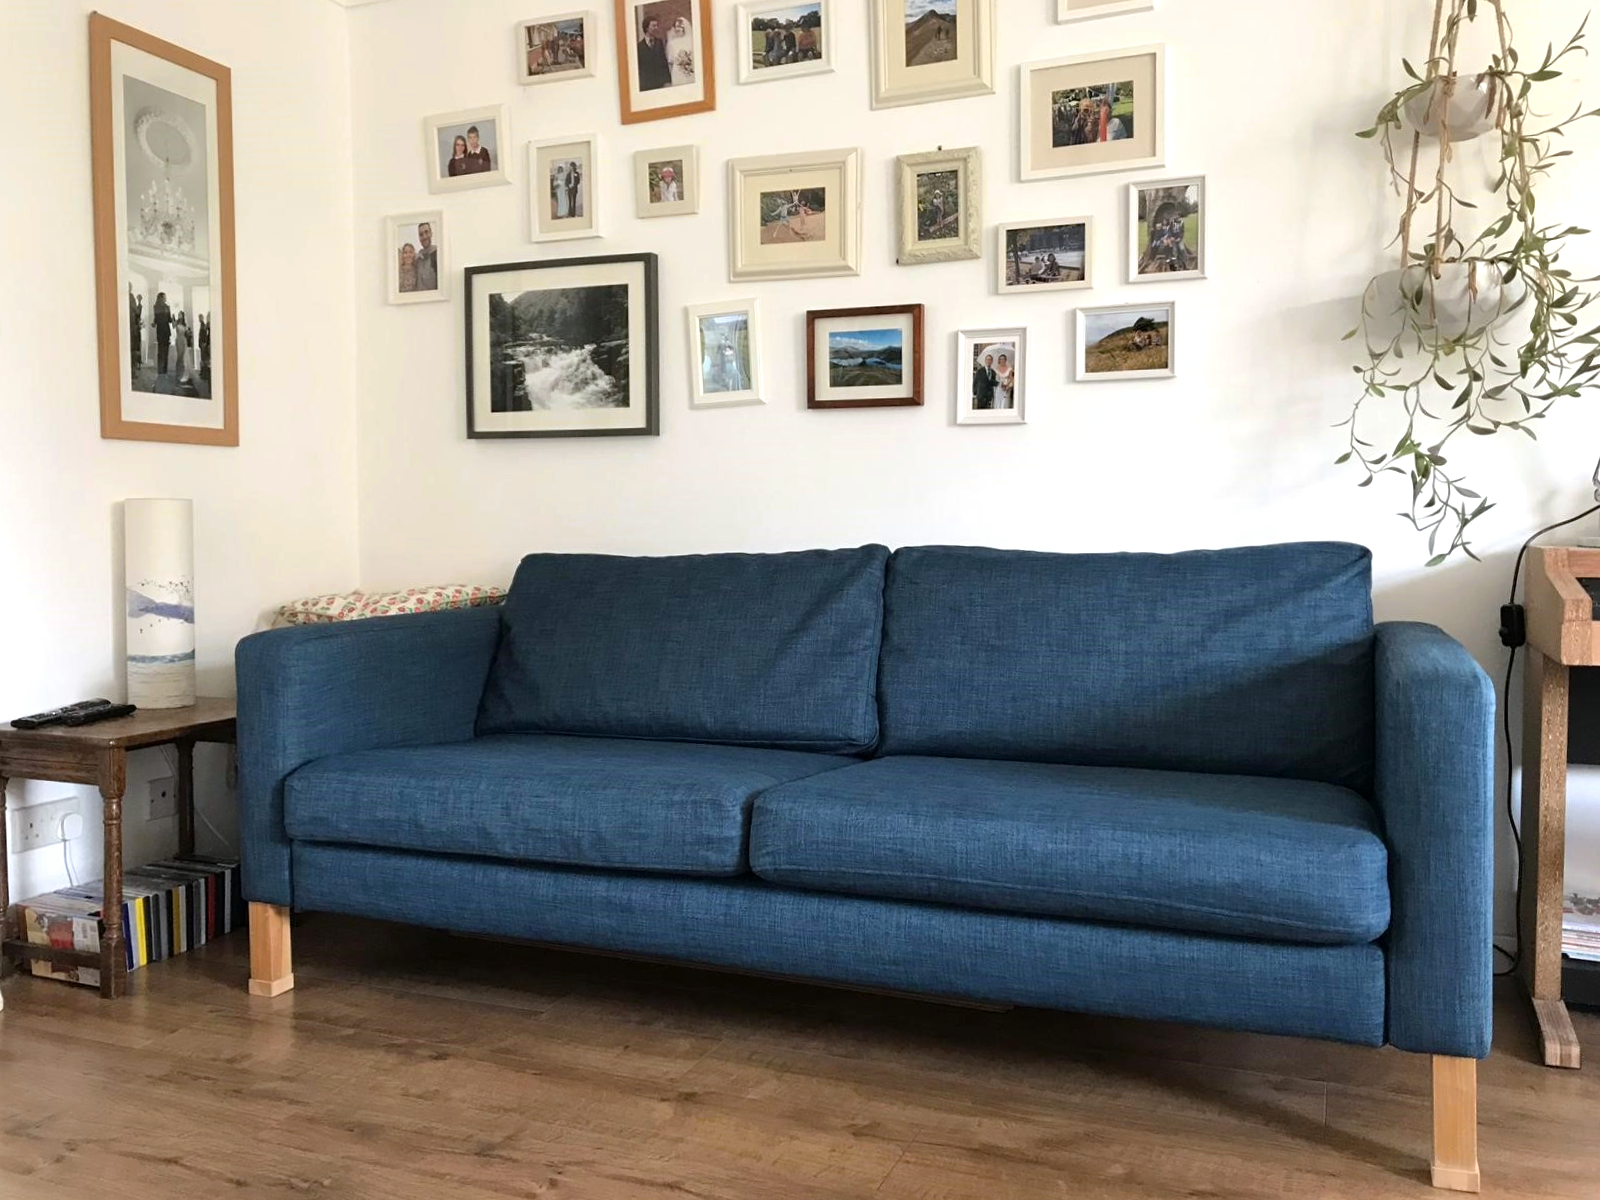 Ikea Karlstad Sofa In Kino Denim Sofa Slipcovers By Comfort Works Click To Buy Couch Covers In The Same Karlstad Sofa Ikea Karlstad Sofa Living Room Designs